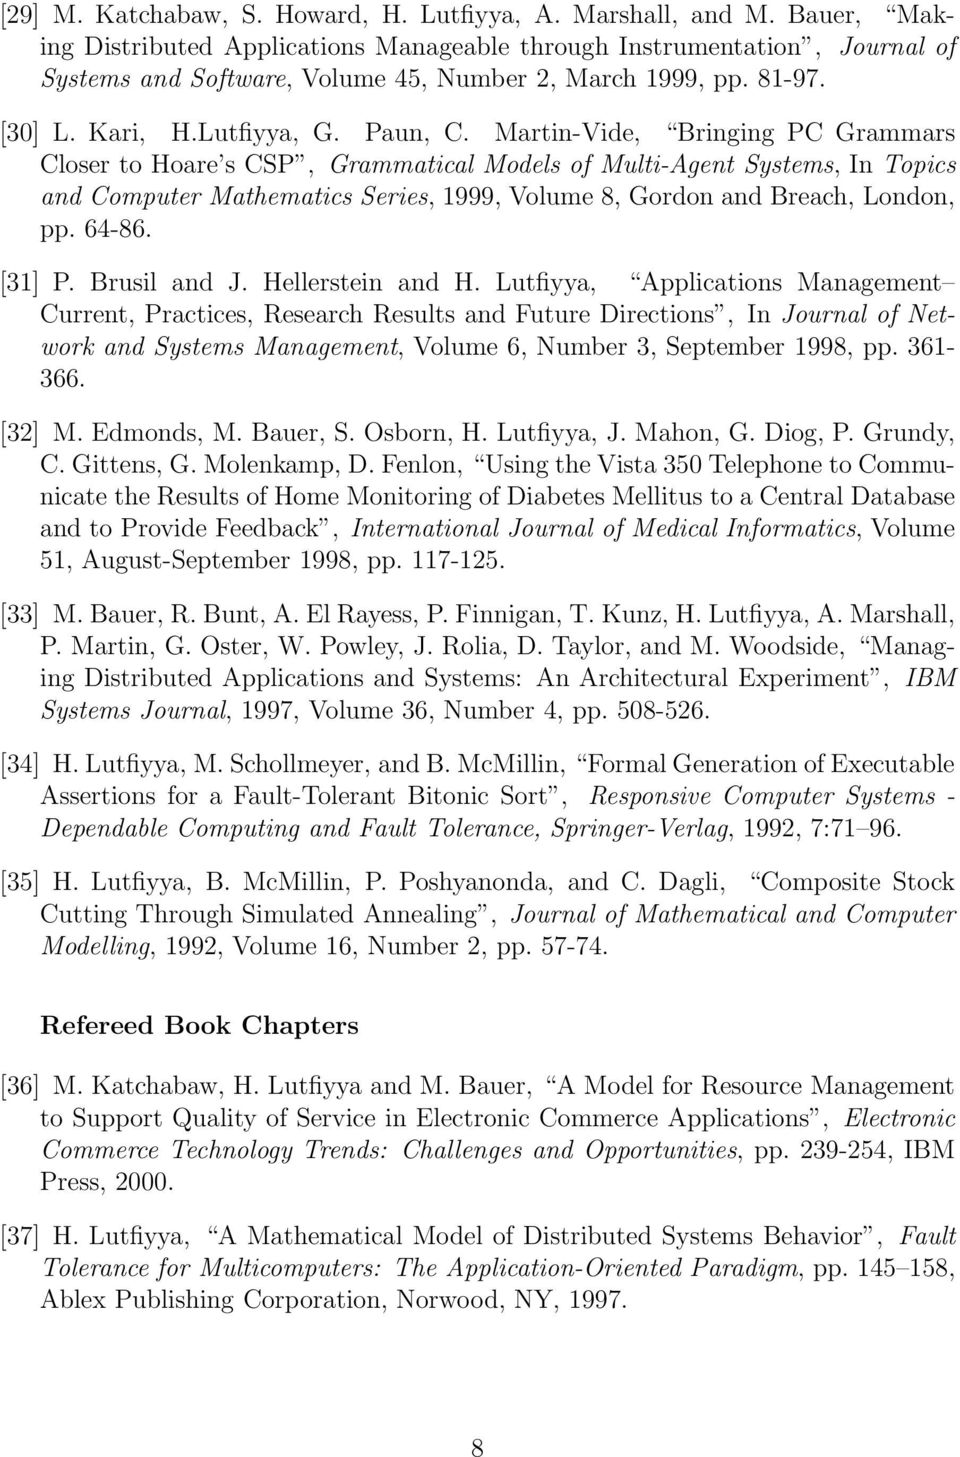 Martin-Vide, Bringing PC Grammars Closer to Hoare s CSP, Grammatical Models of Multi-Agent Systems, In Topics and Computer Mathematics Series, 1999, Volume 8, Gordon and Breach, London, pp. 64-86.